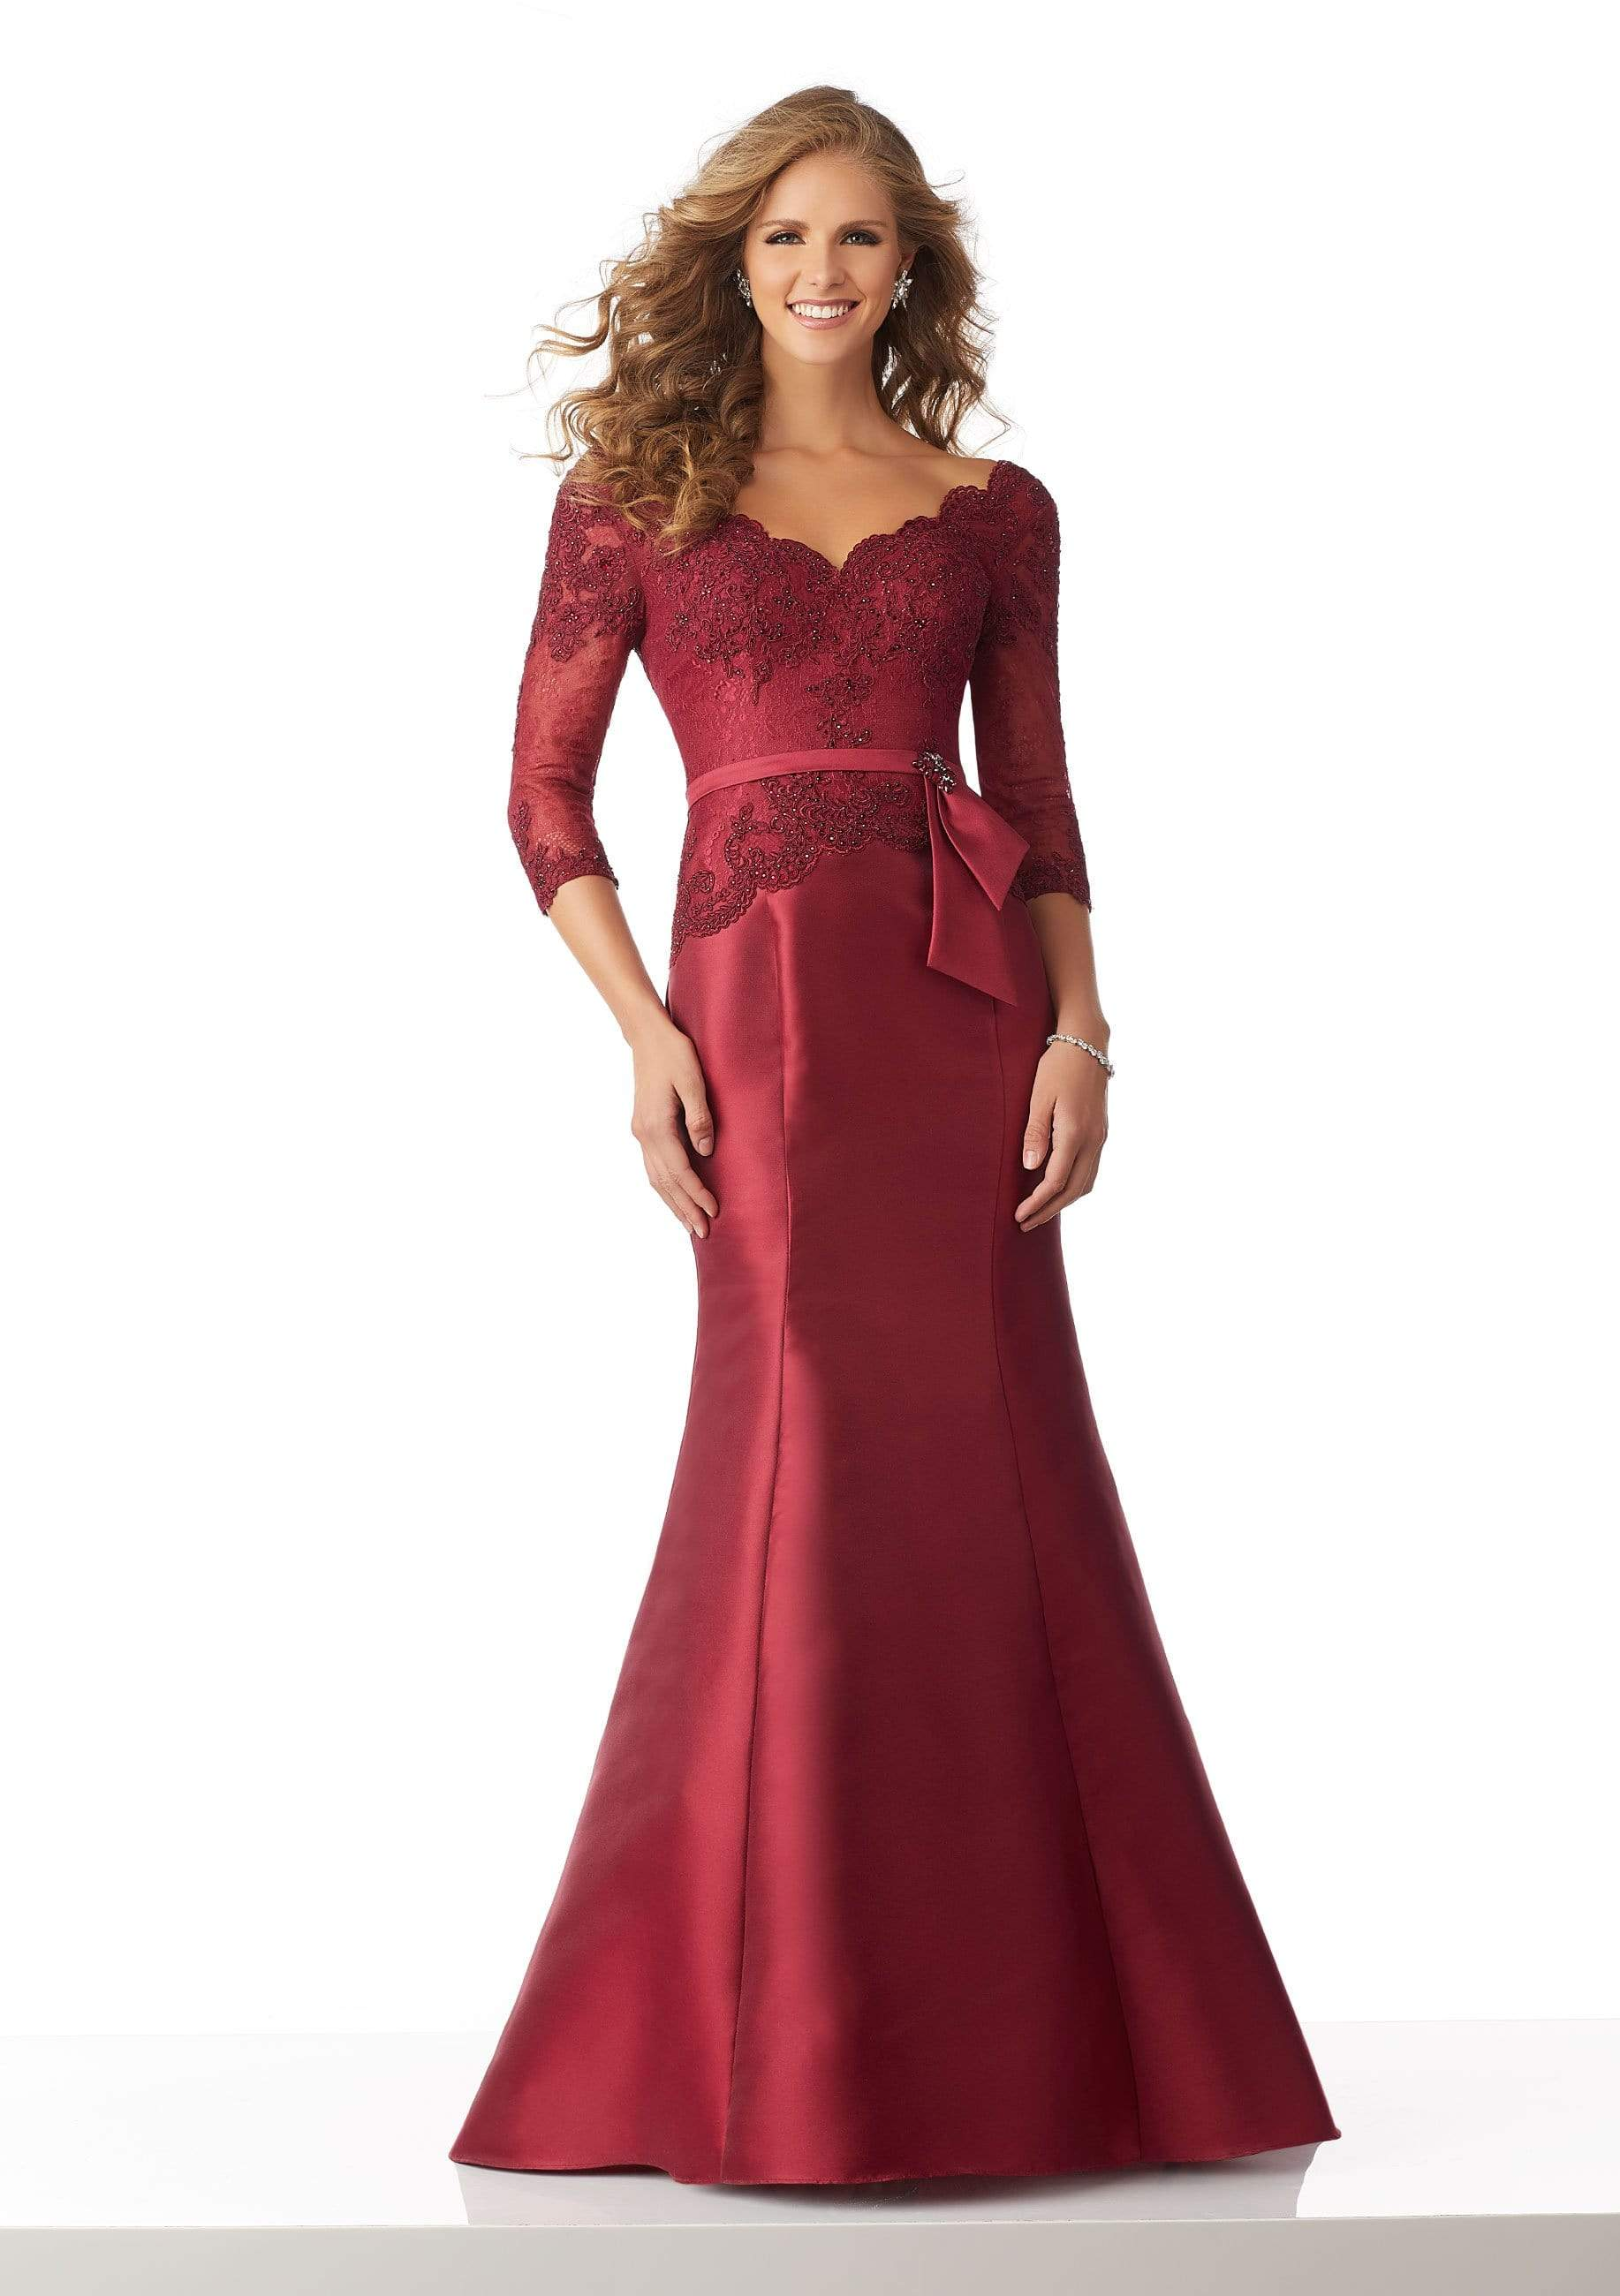 MGNY By Mori Lee - 71817 Beaded Lace Quarter Sleeves Trumpet Gown Evening Dresses 0 / Wine